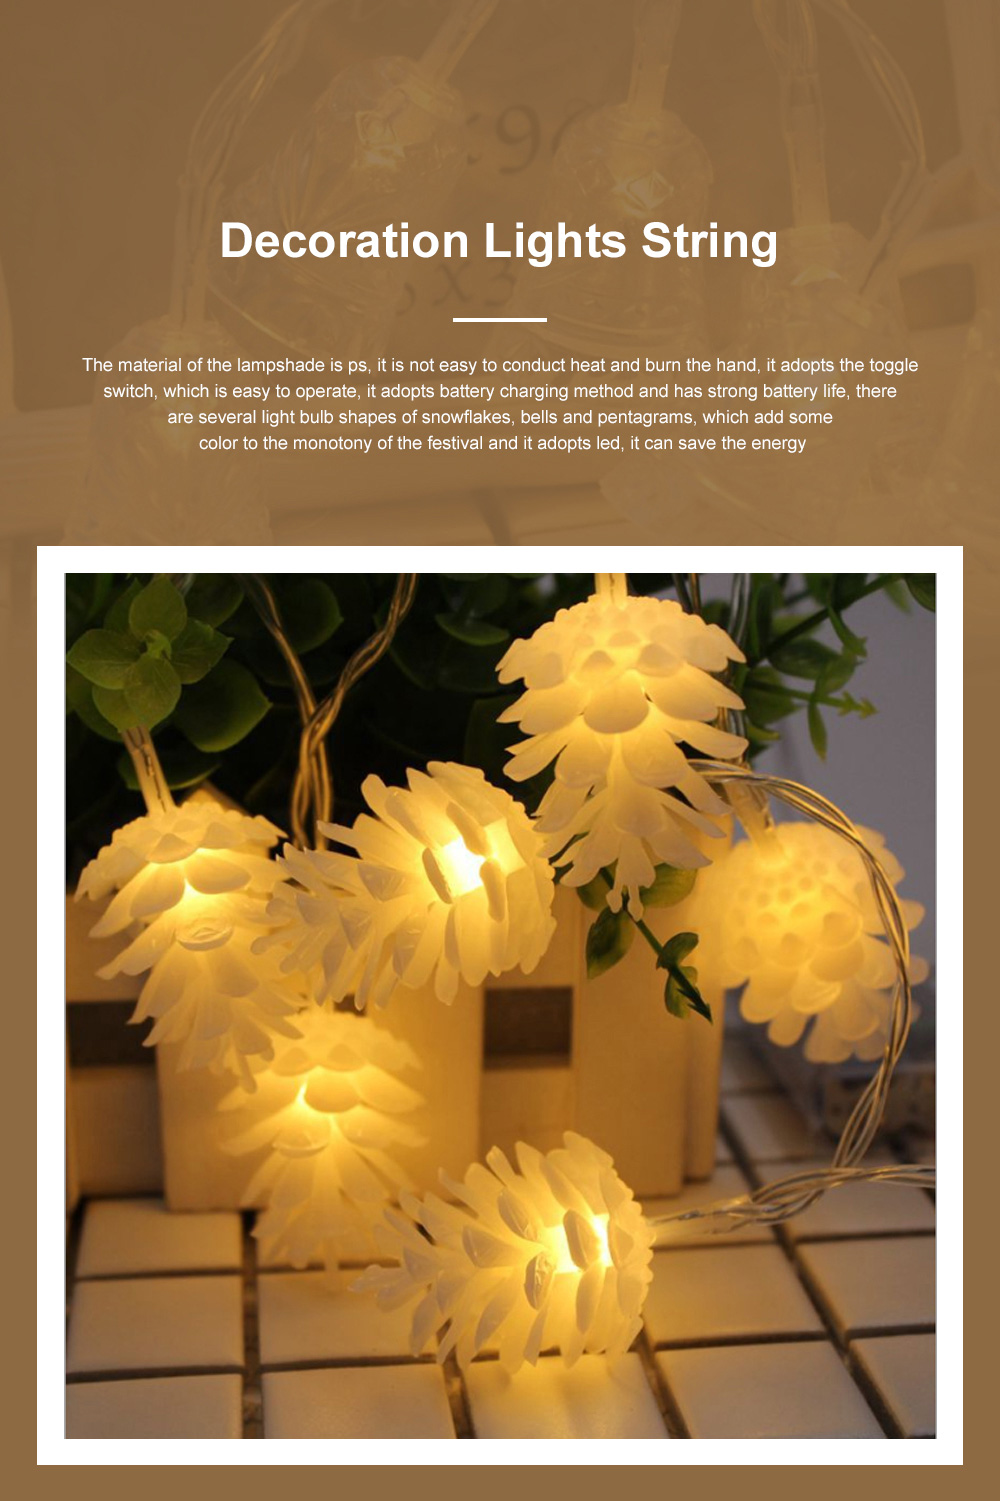 Led Snowflake Bell Christmas Lights Wedding Holiday Home Ceiling Window Door Tree Decoration Led Lights String 0